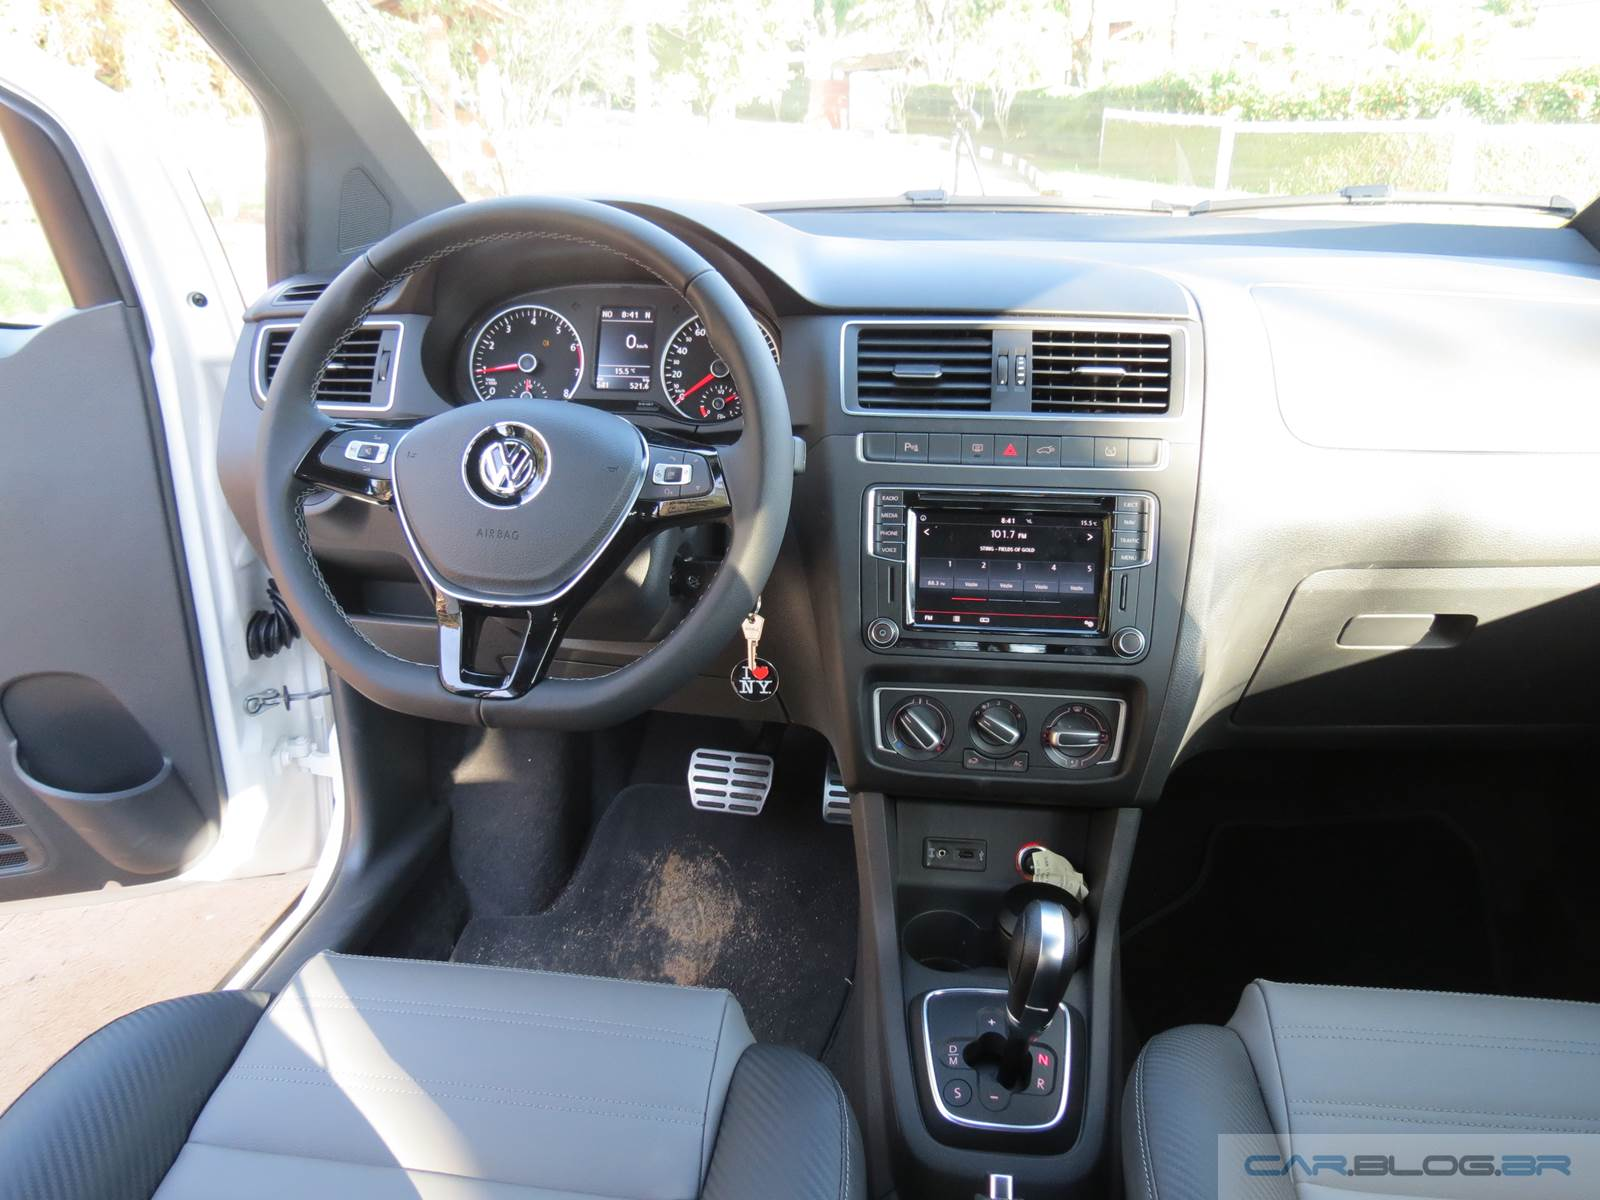 VW CrossFox 2016 I-Motion - interior